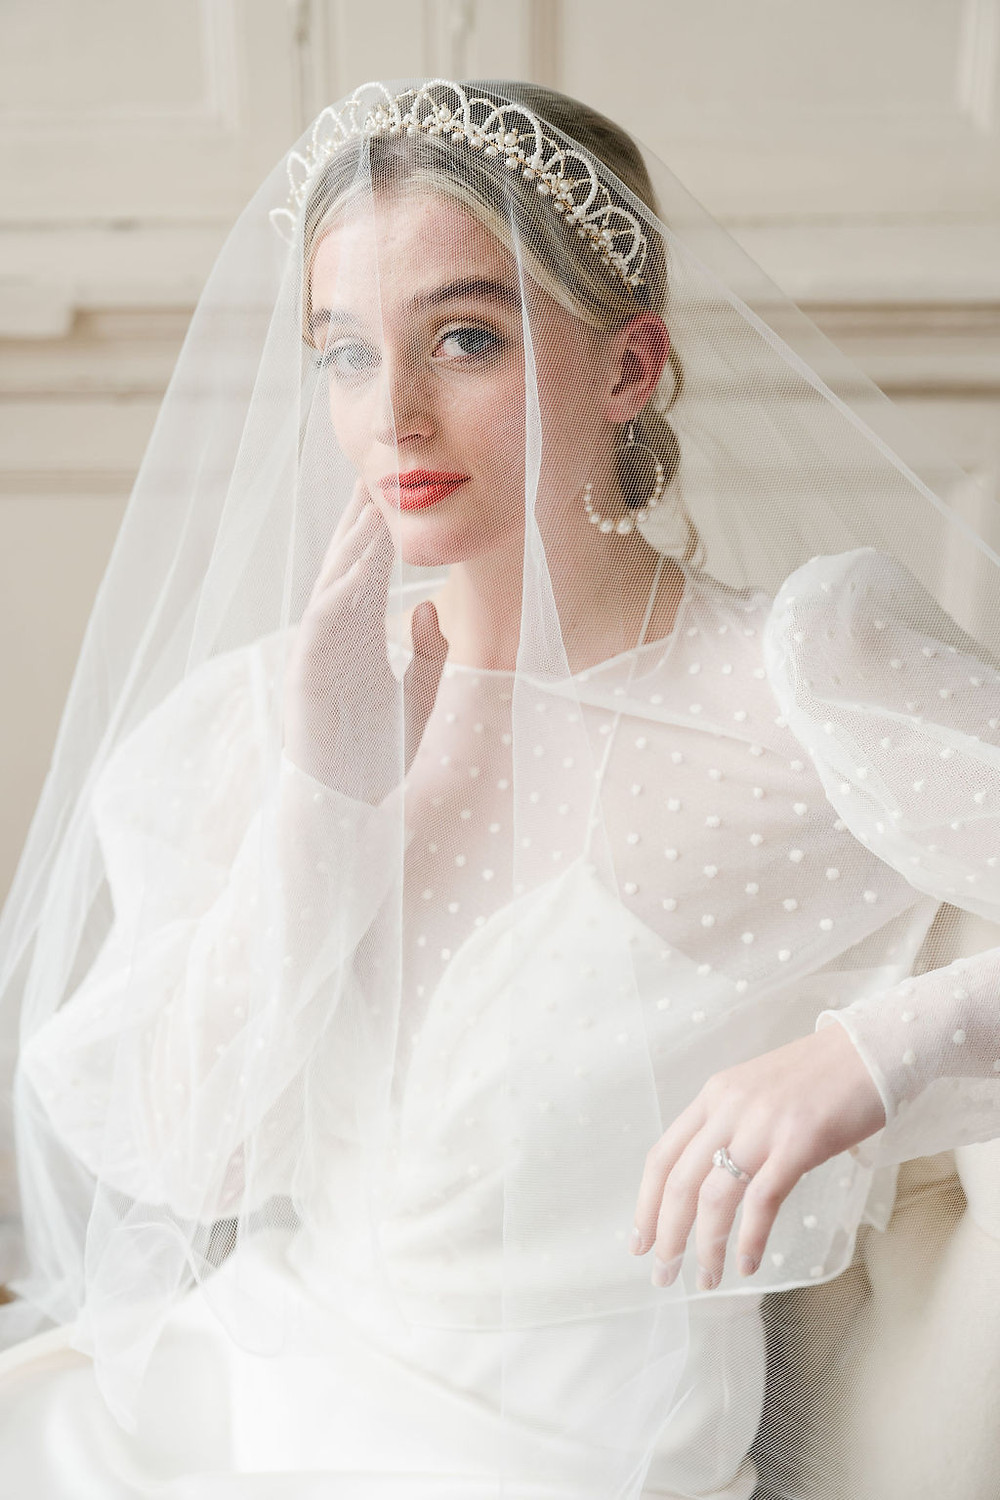 Bride wearing a drop veil over her ivory and gold wedding crown designed by Glorious by Heidi in Cheshire, UK